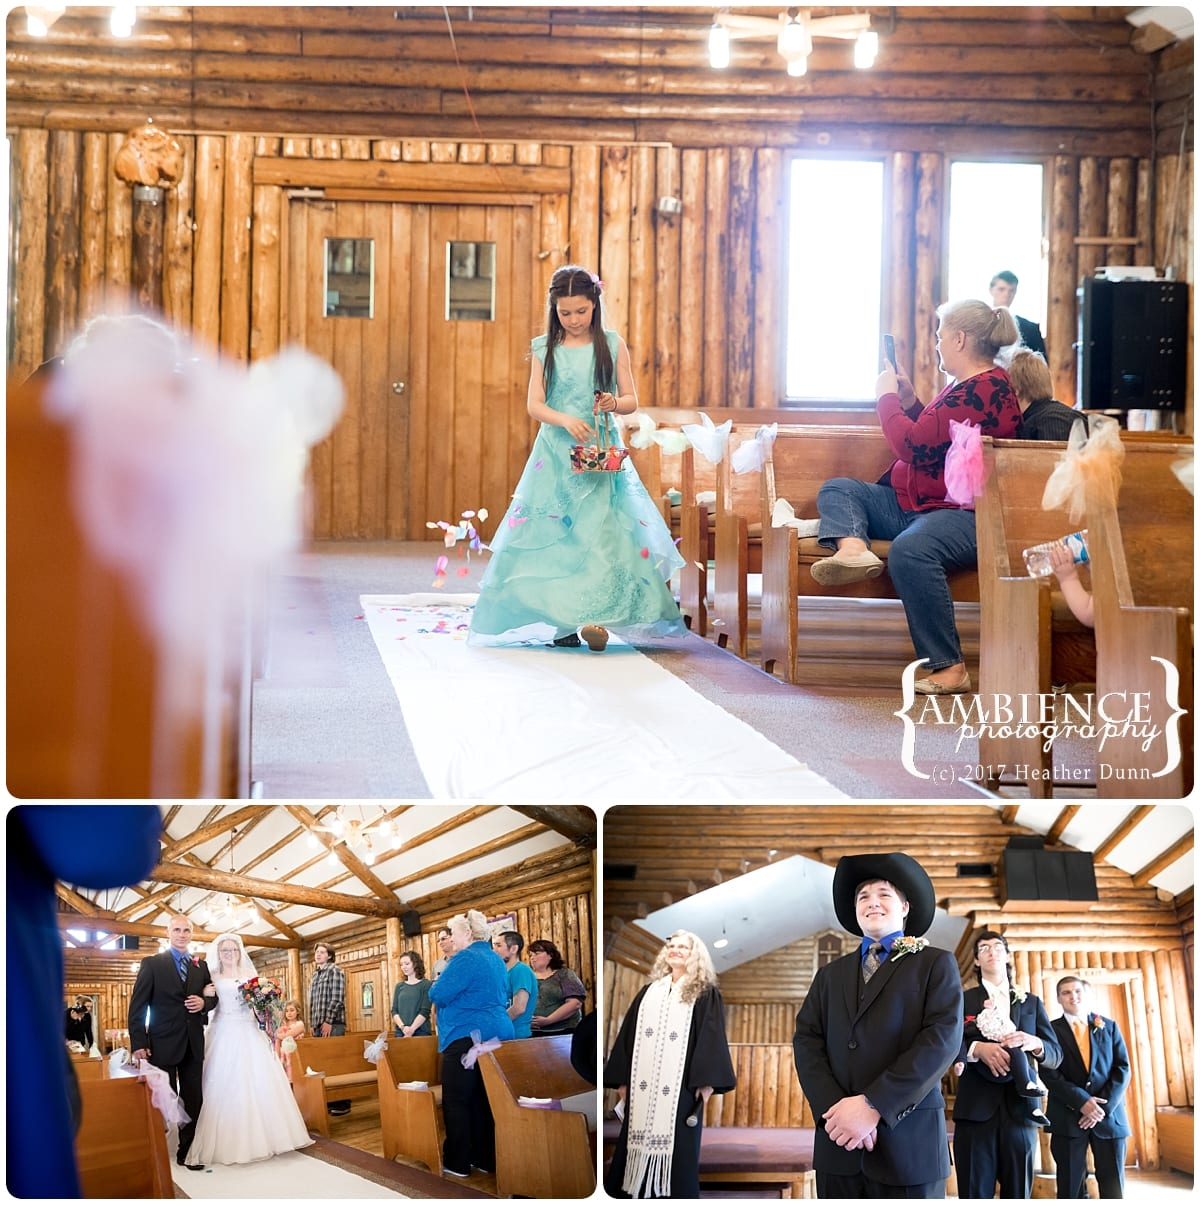 Ambience Photography,Ceremony,Church of 1000 Logs,Disney Wedding,Heather Dunn,Hunter,Kitson,Palmer Alaska,Photography in Alaska,Rainbow Wedding,Wasilla Alaska,Wedding,